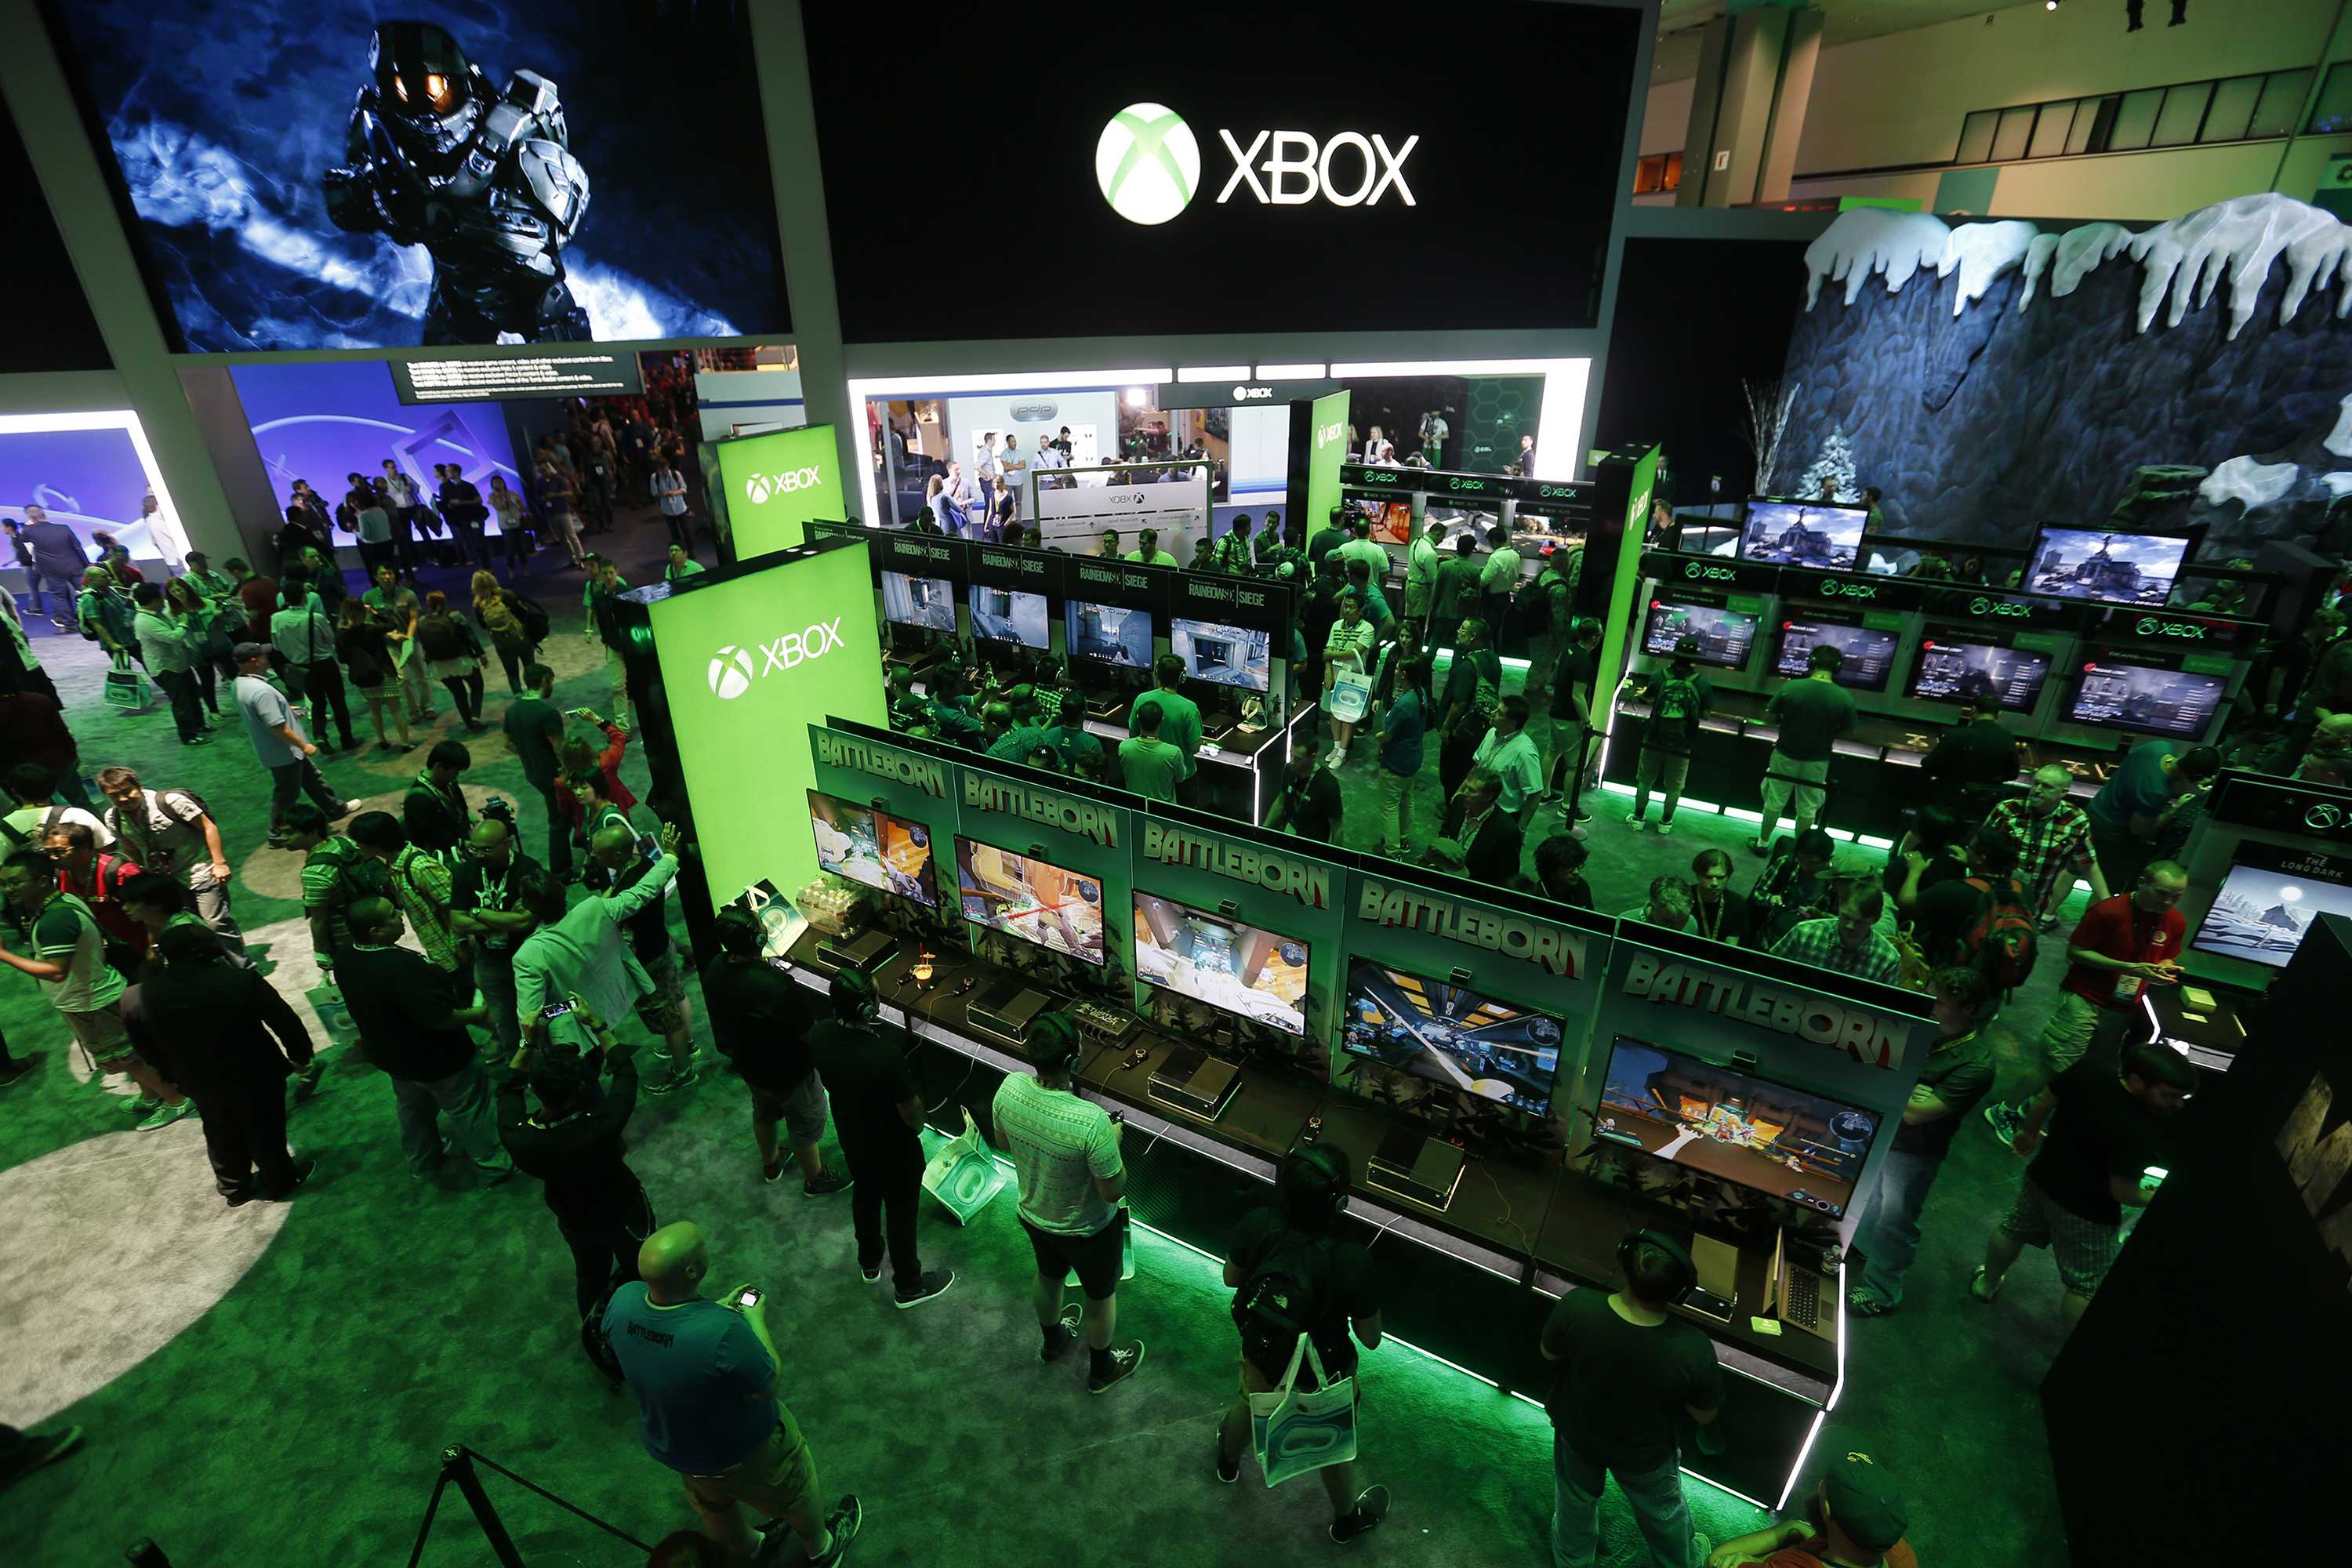 A large crowd of video game enthusiasts fill the Xbox game booth